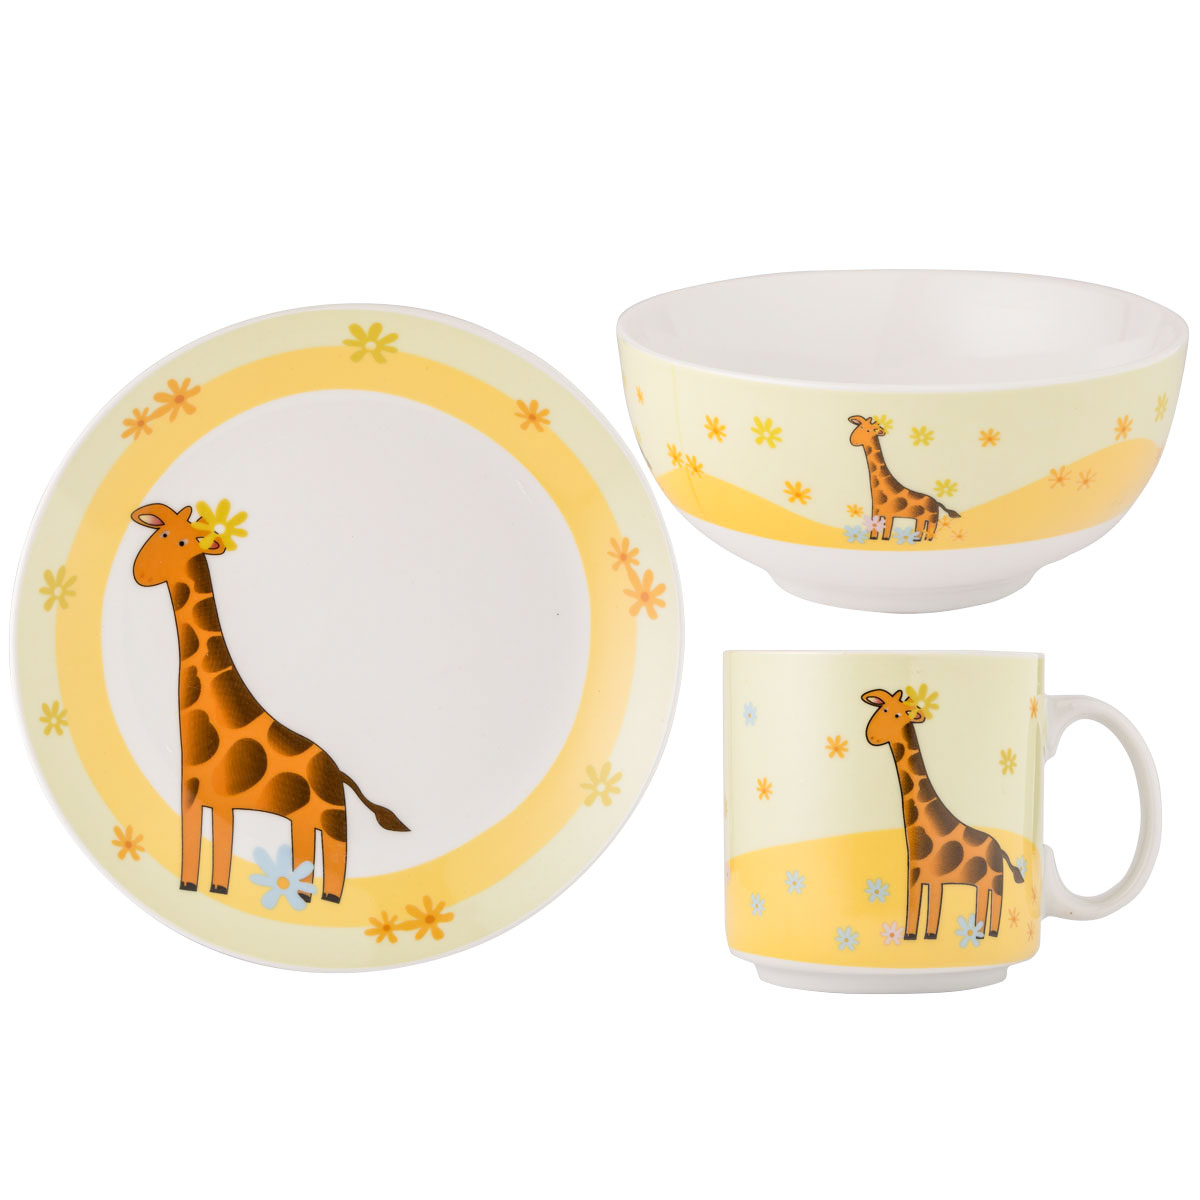 3er set kindergeschirr giraffe porzellan geschirr kinder teller sch ssel tasse ebay. Black Bedroom Furniture Sets. Home Design Ideas